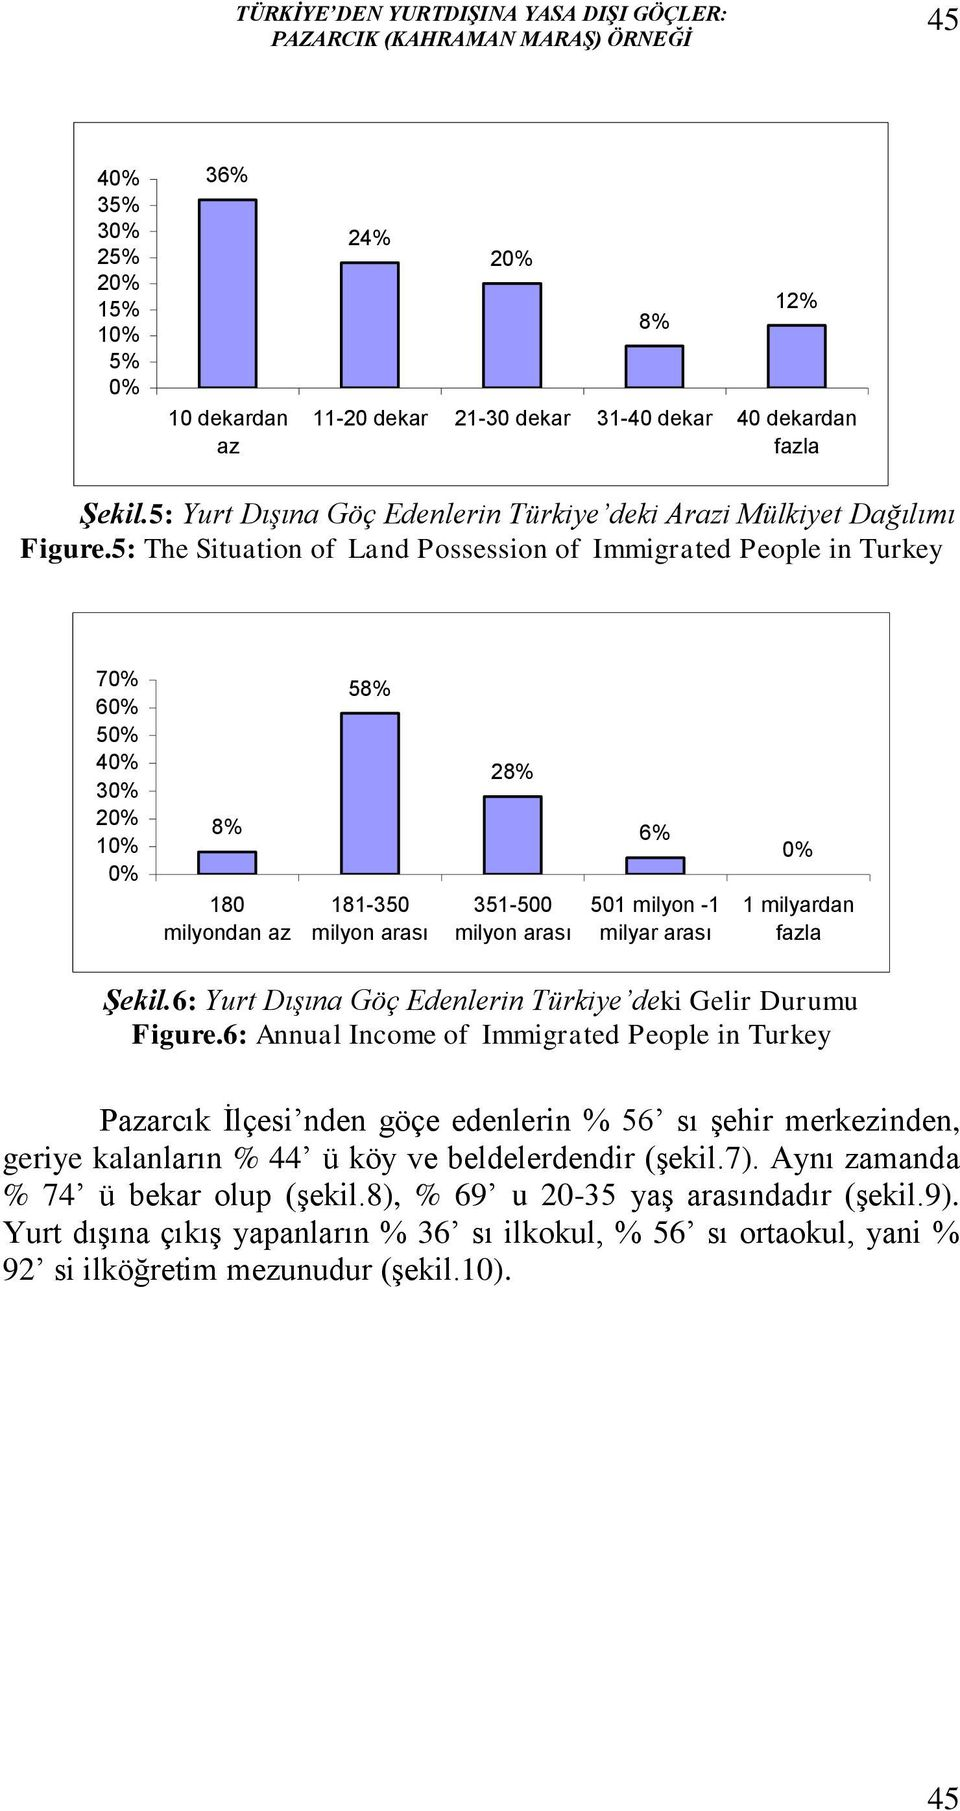 5: The Situation of Land Possession of Immigrated People in Turkey 7 6 5 4 3 2 1 8% 180 milyondan az 58% 181-350 milyon arası 28% 351-500 milyon arası 6% 501 milyon -1 milyar arası 1 milyardan fazla